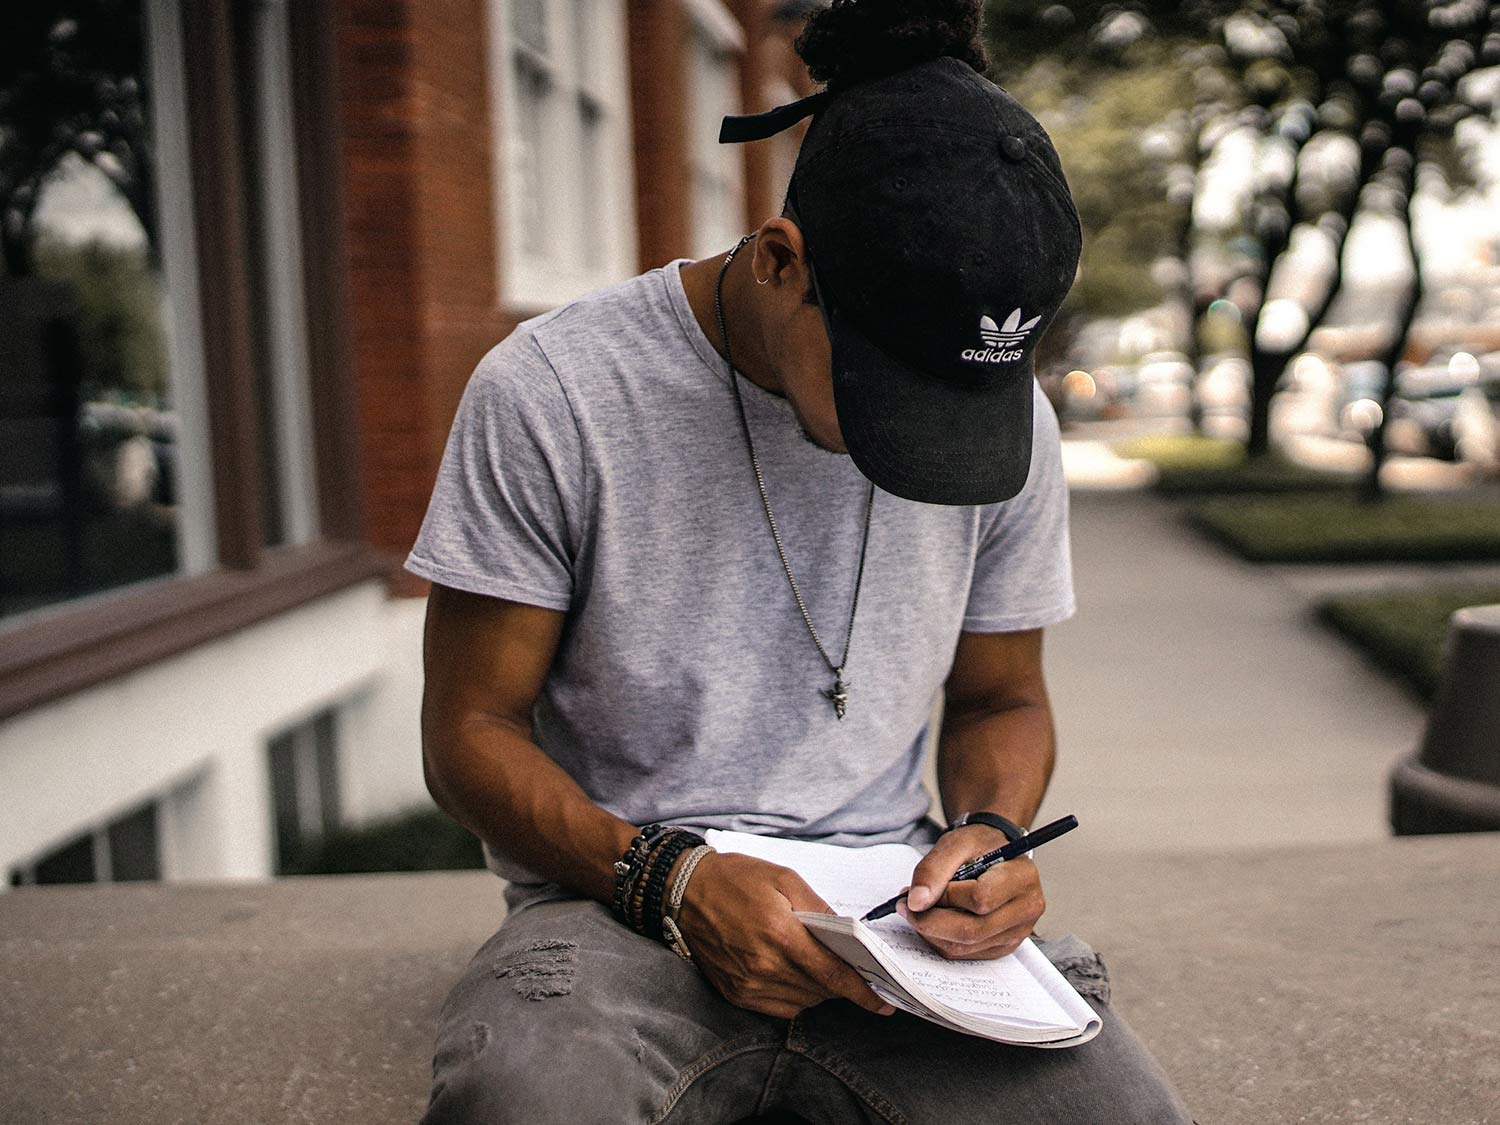 A man sits outdoors, writing in a notebook balanced on his leg